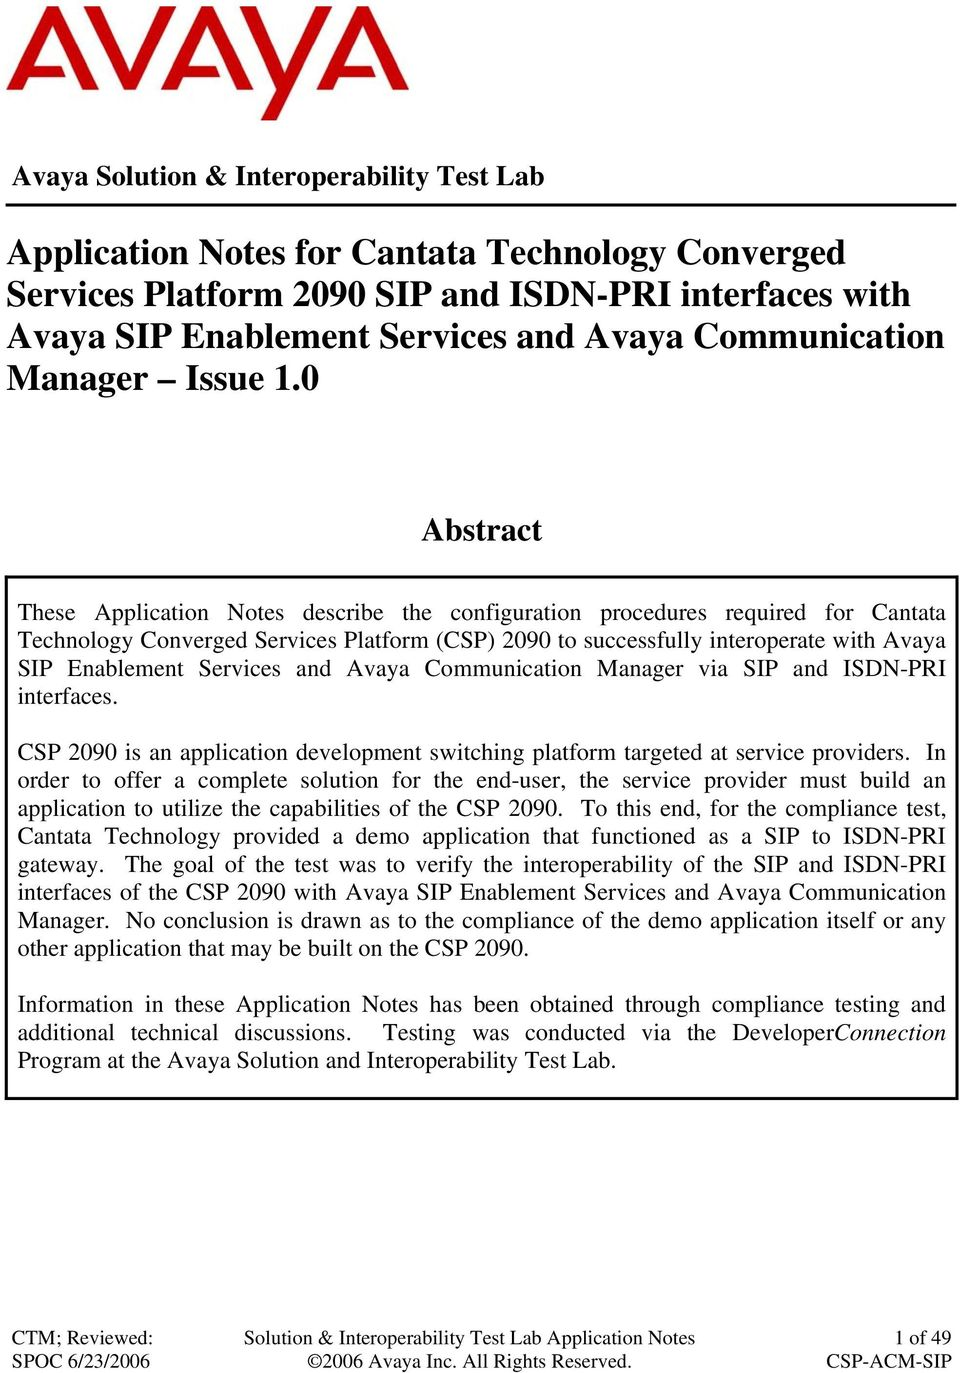 0 Abstract These Application Notes describe the configuration procedures required for Cantata Technology Converged Services Platform (CSP) 2090 to successfully interoperate with Avaya SIP Enablement